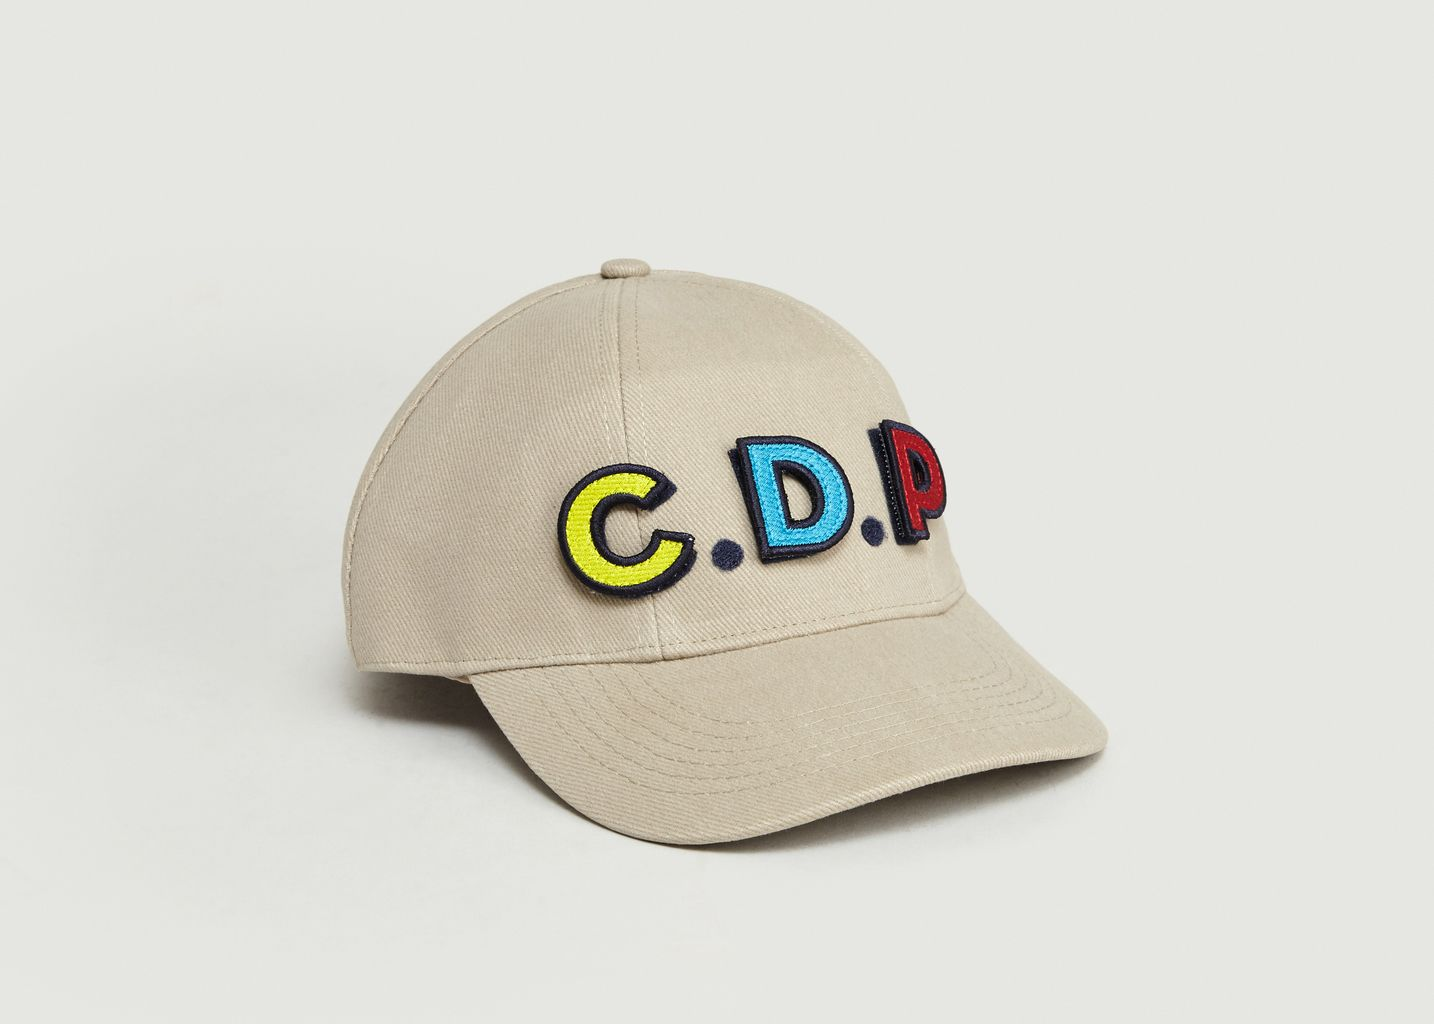 Casquette CDP Multicolore - Commune de Paris